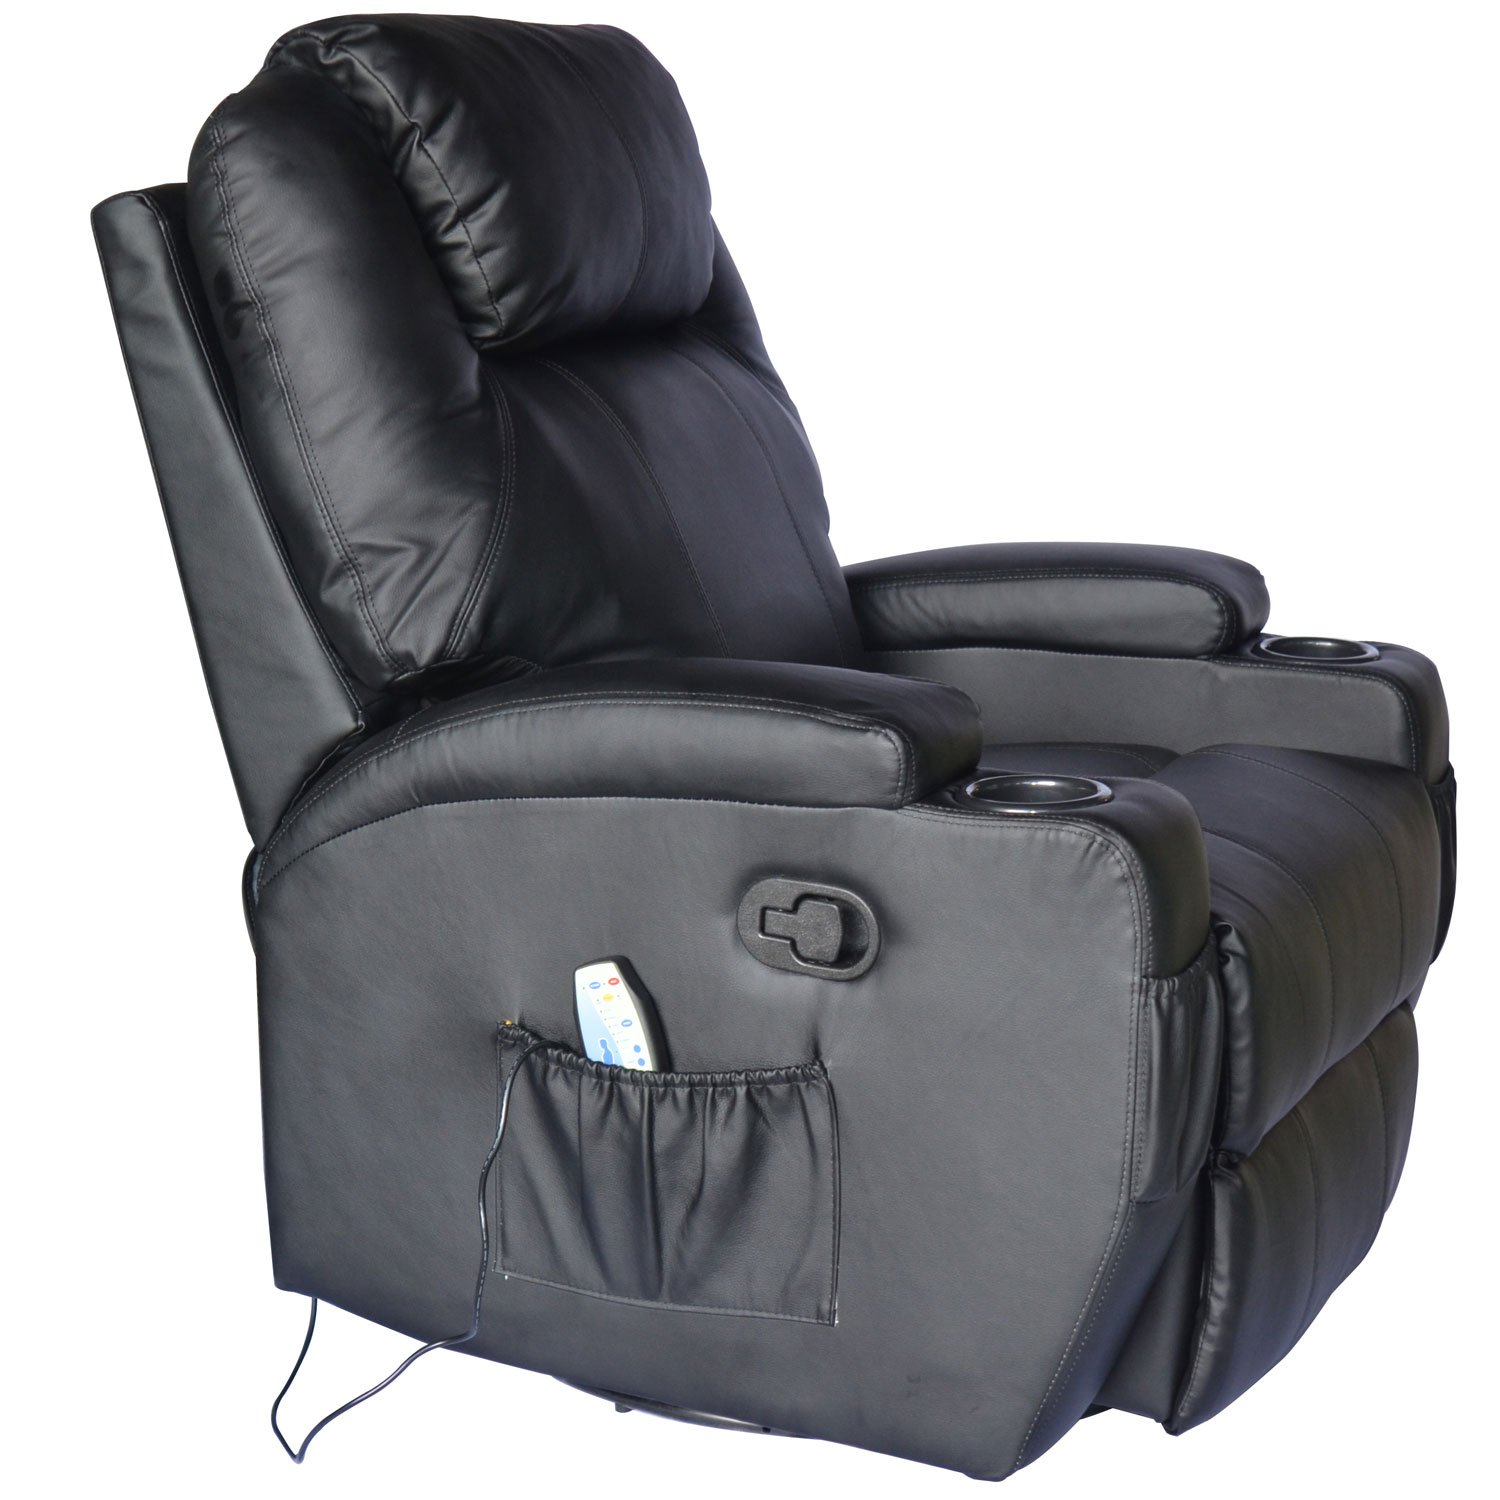 HOMCOM Luxury Electronic Heated Massage Sofa Leather Adjustable Recliner  Chair Armchair Lounge (Black): Amazon.ca: Electronics